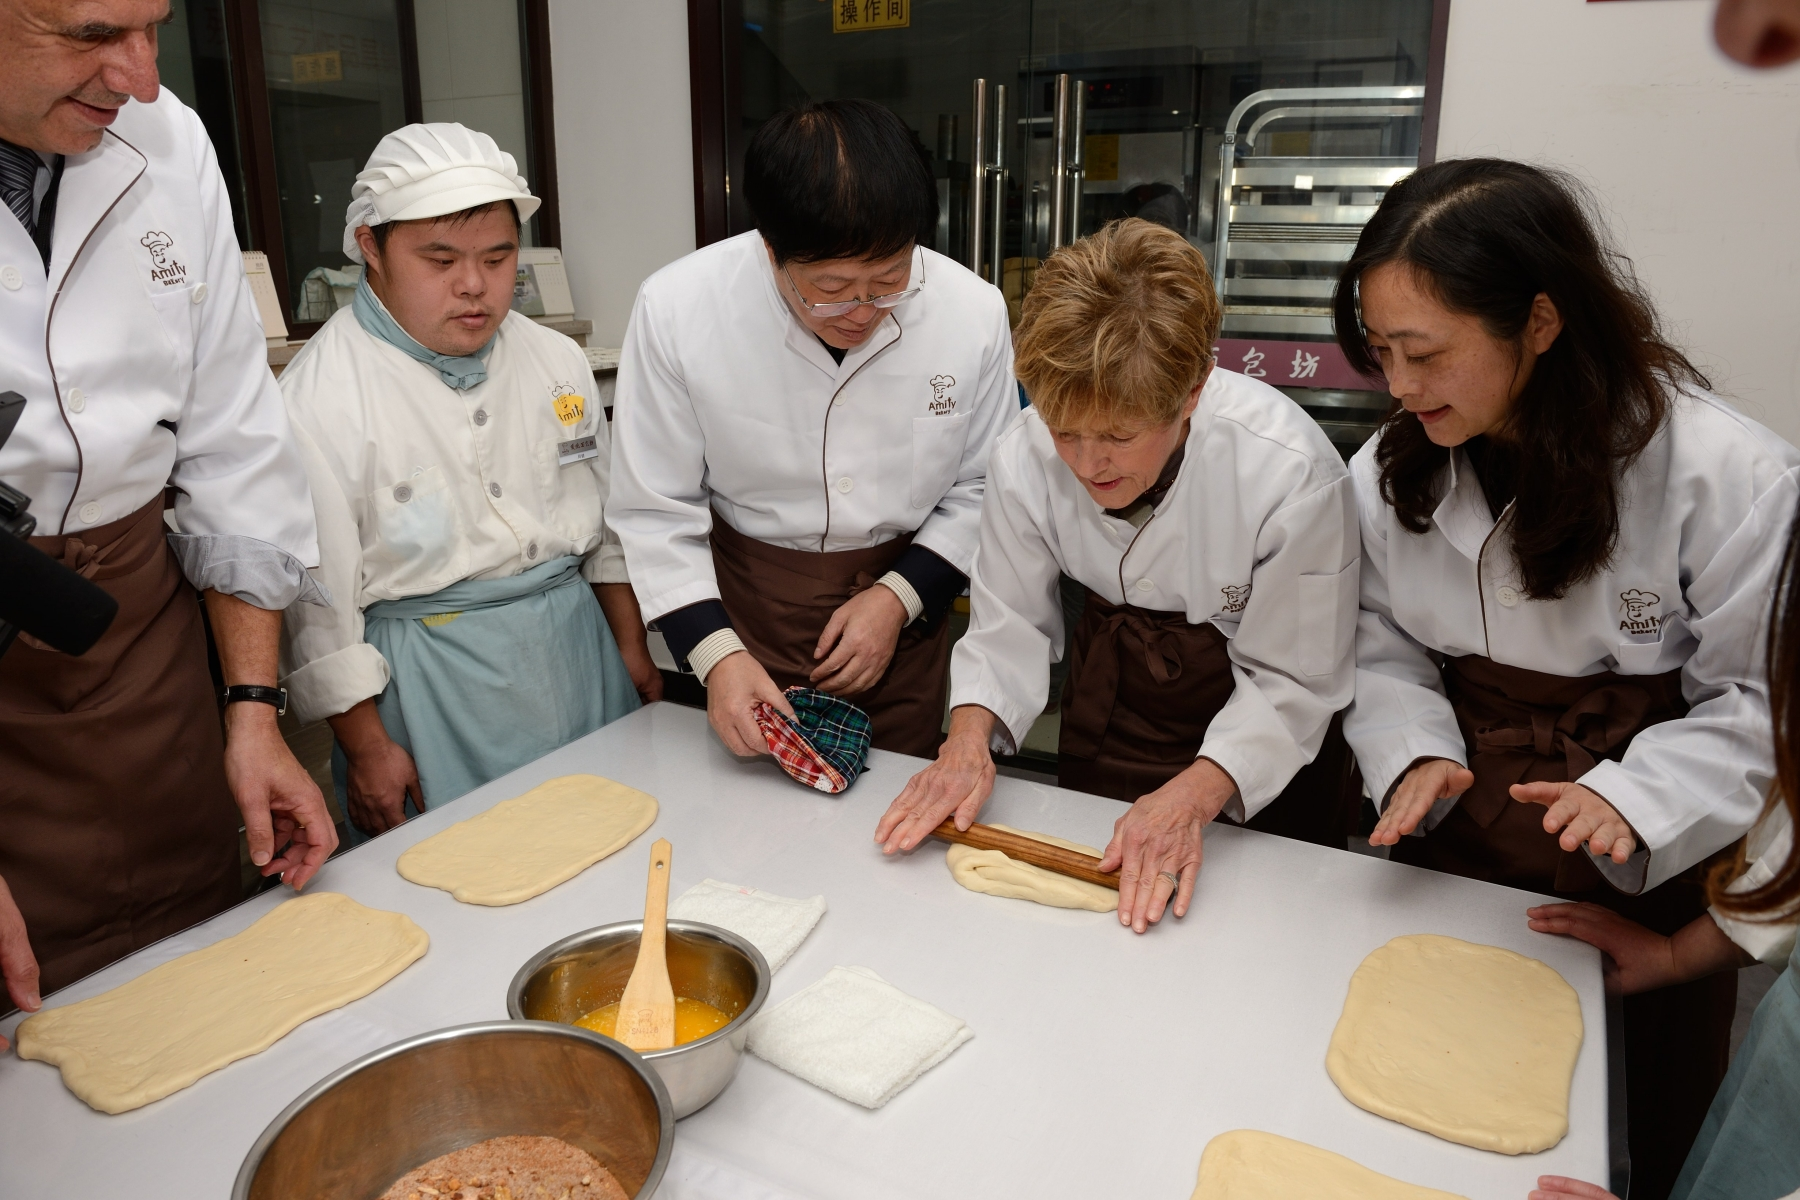 After touring the facilities, she participated in a baking workshop and sample delicious baked goods alongside young trainees with developmental disabilities.